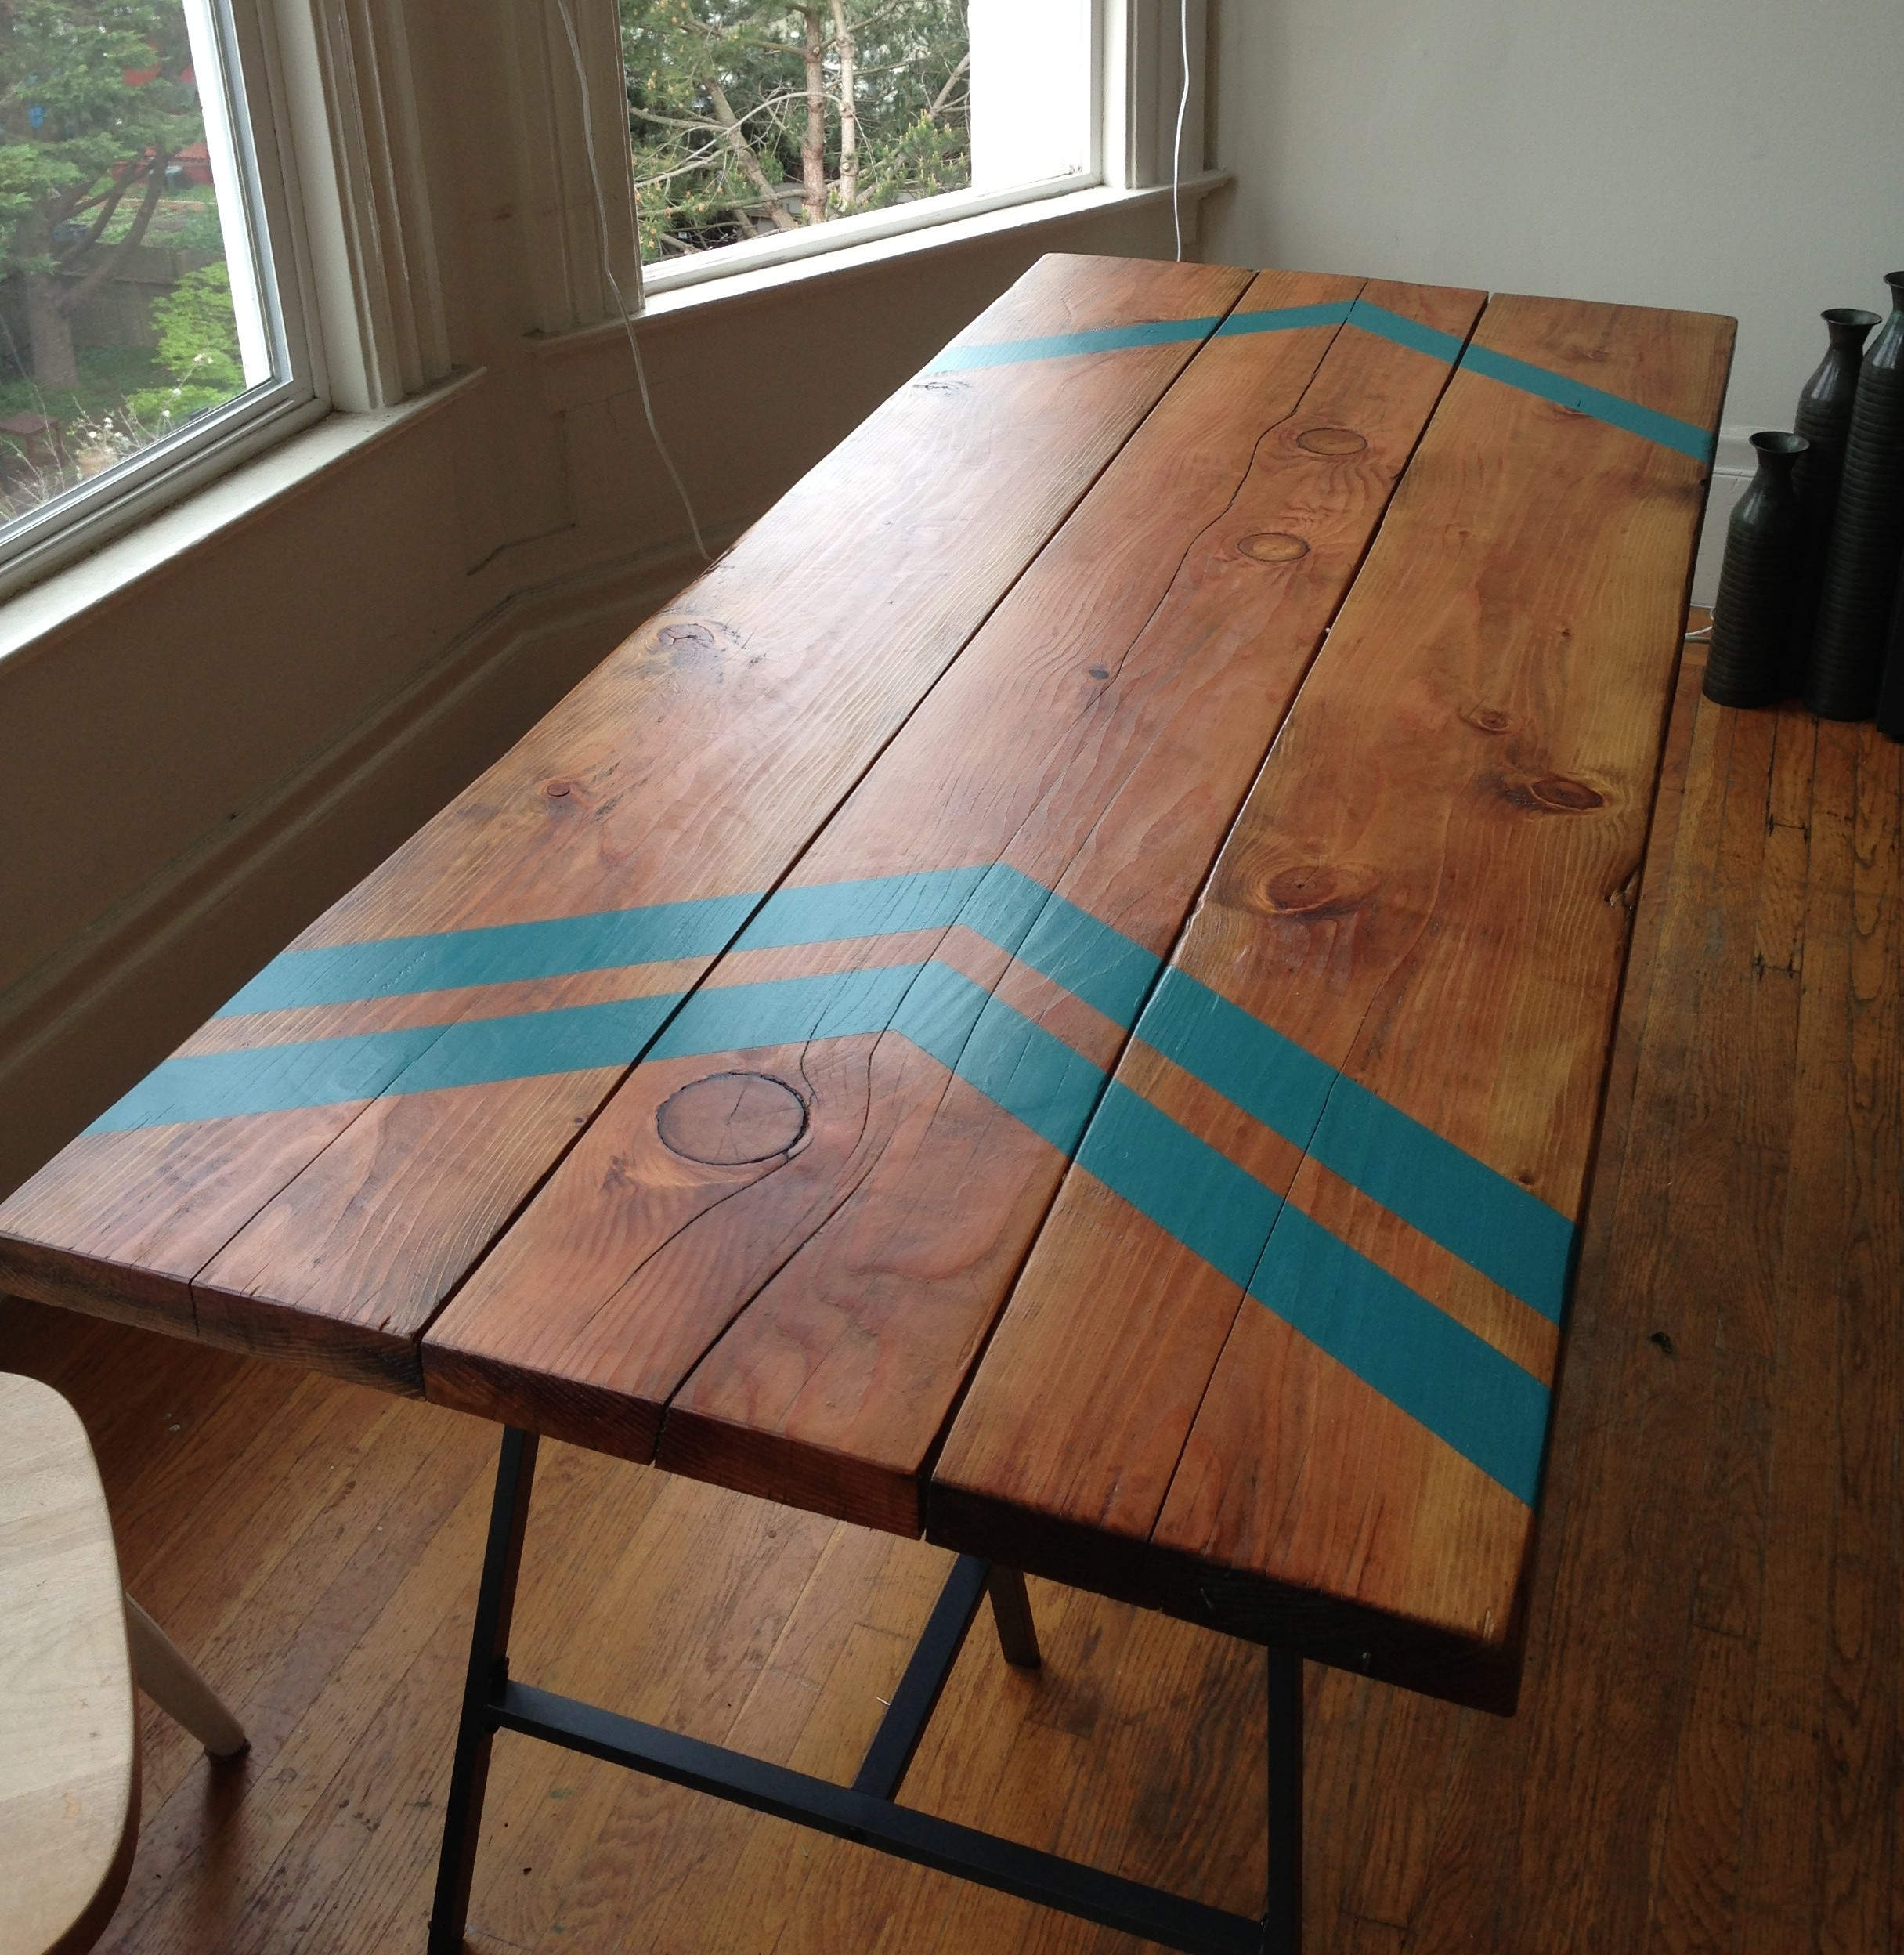 diy kitchen tables cost estimator my favorite table ideas buy this cook that 15 very cool simple small and love the modern touches also loving wood finish project by legs